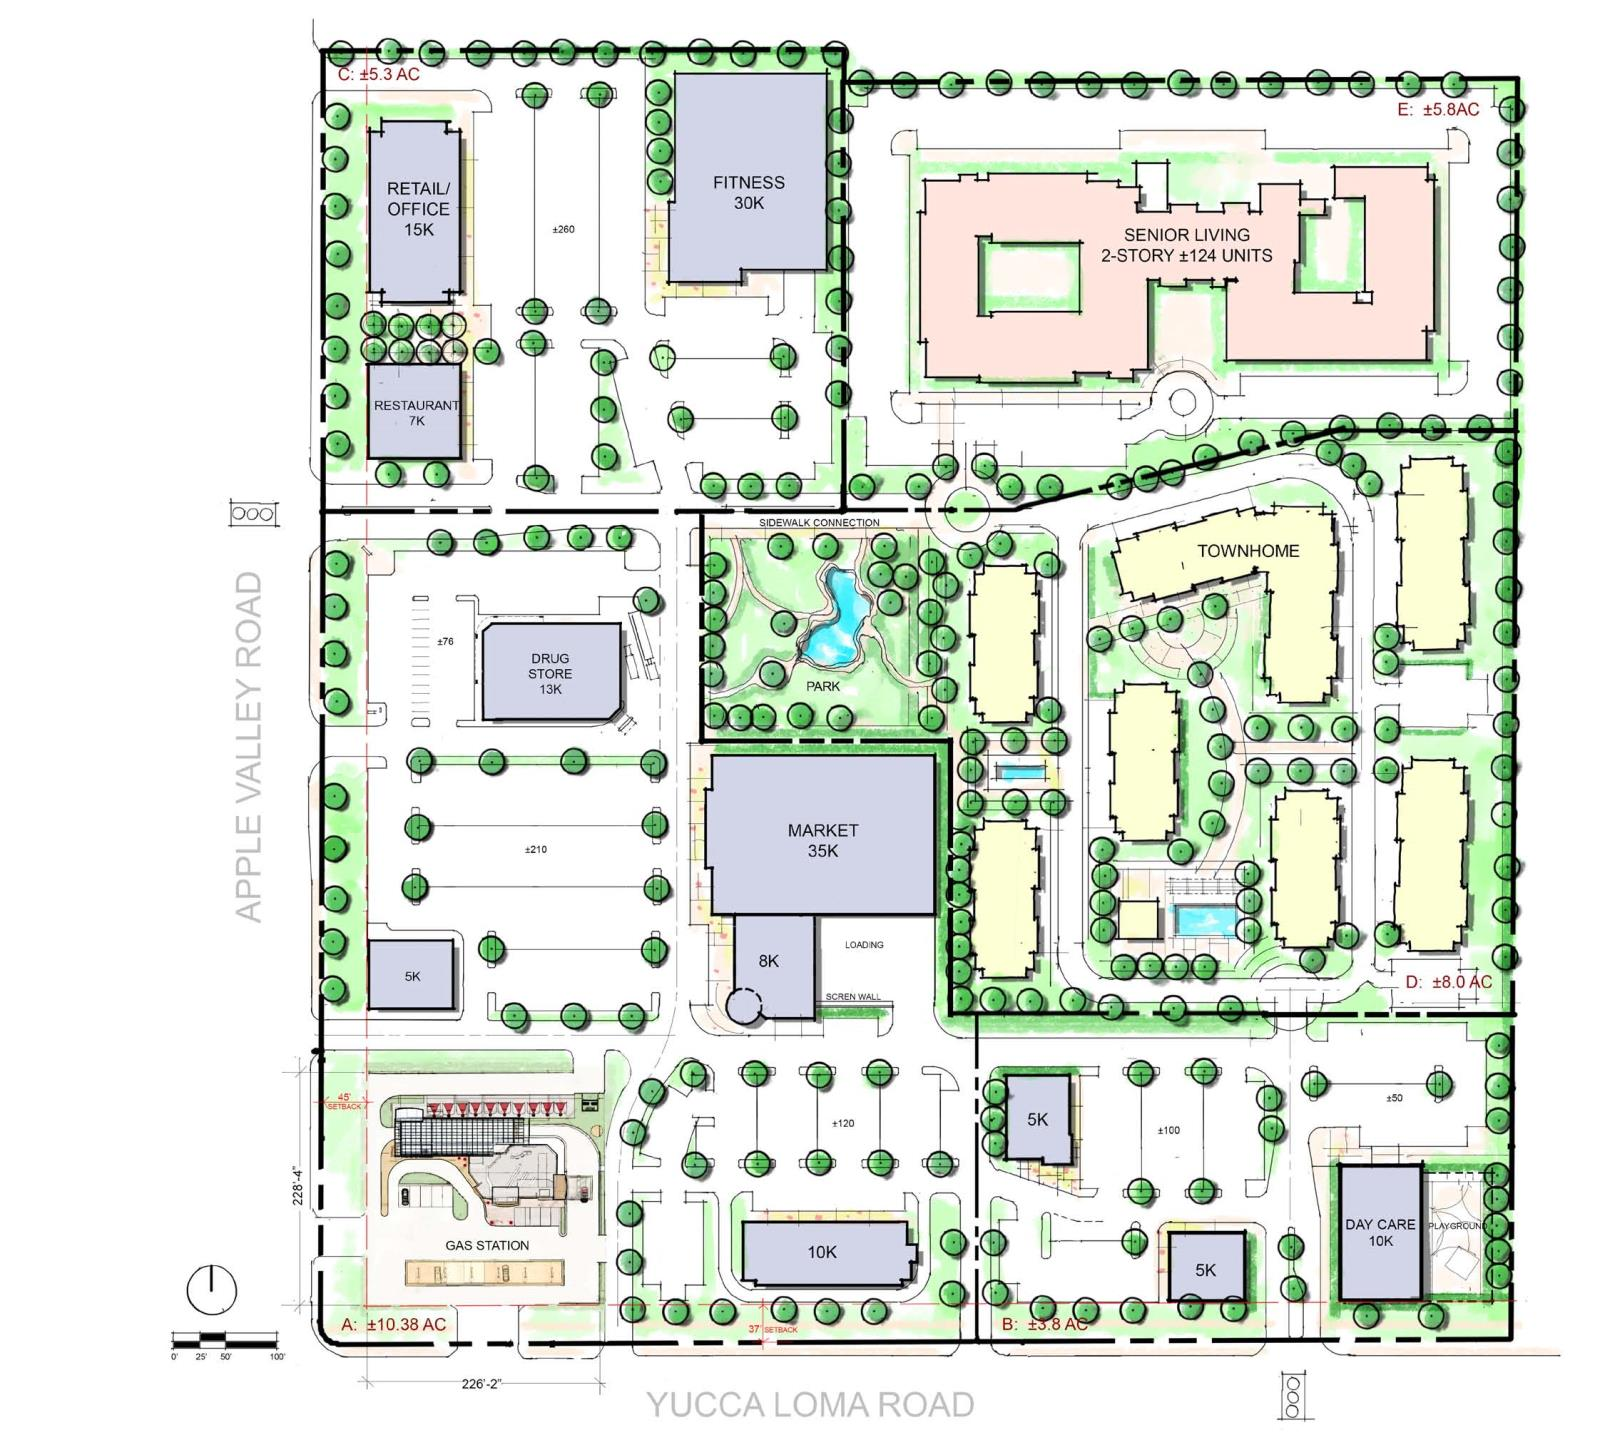 Quail Ridge Plaza Draft Site Plan